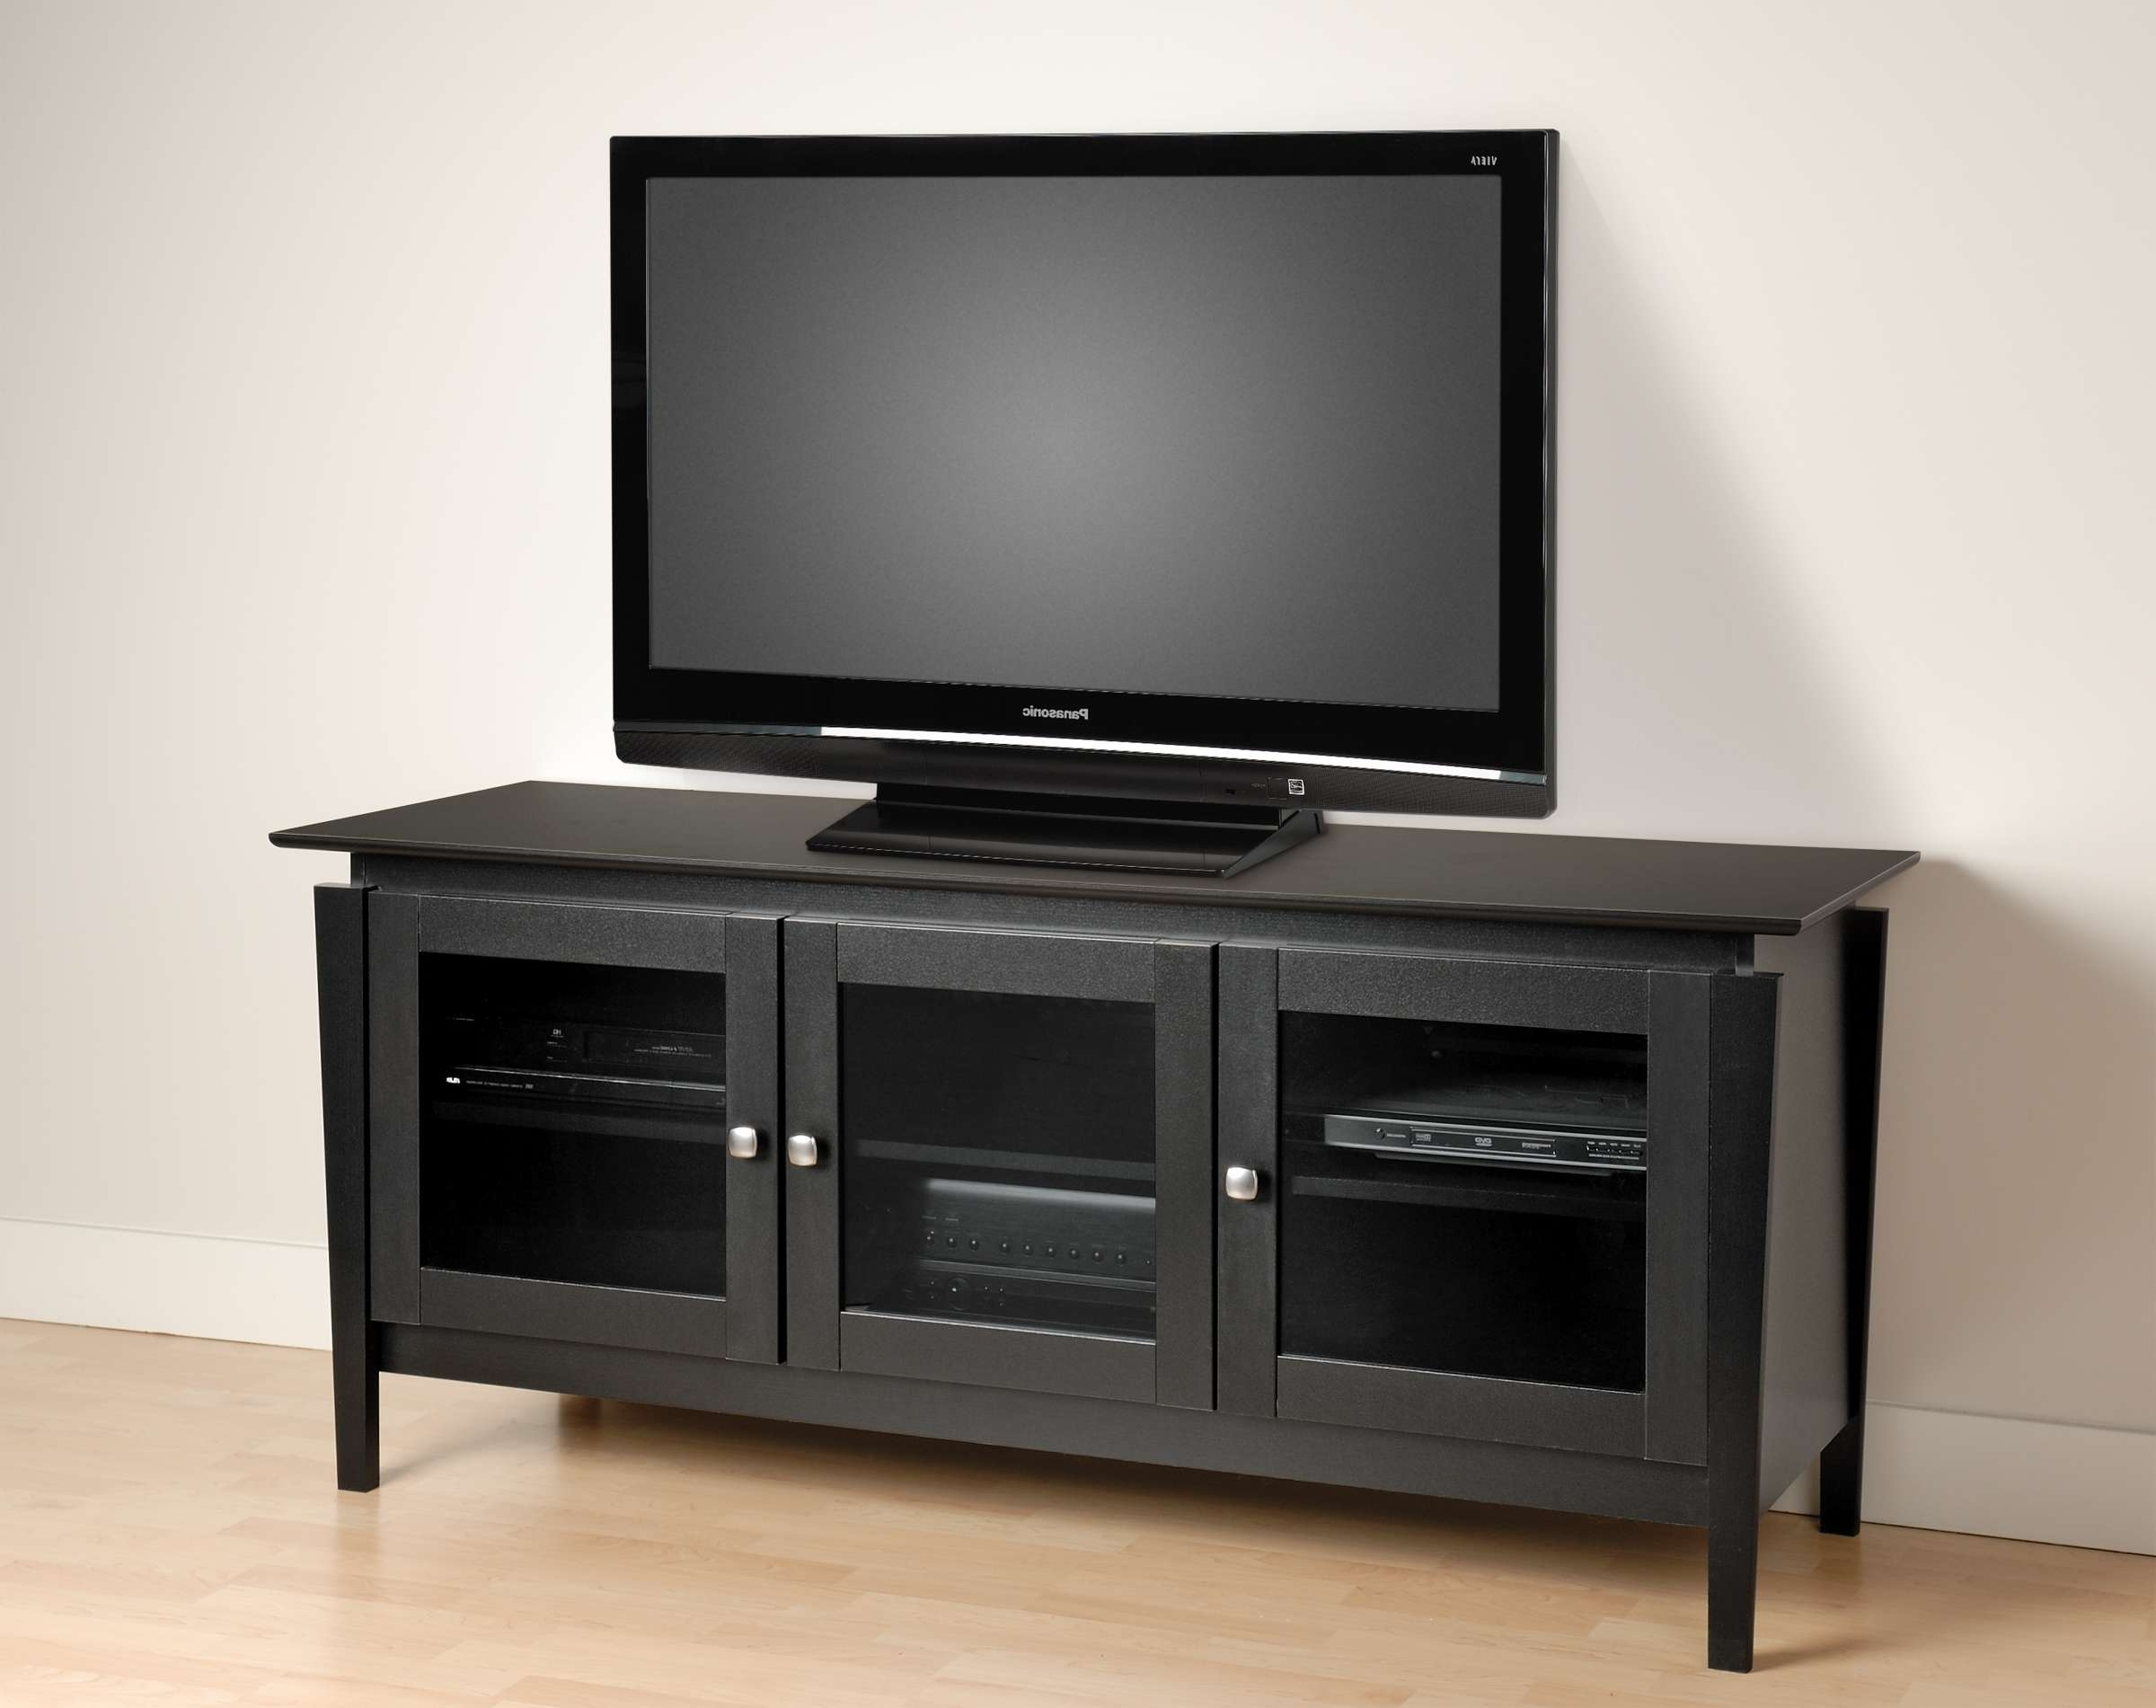 White Tv Cabinet With Glass Doors Images – Doors Design Ideas Throughout Black Corner Tv Cabinets With Glass Doors (View 7 of 20)